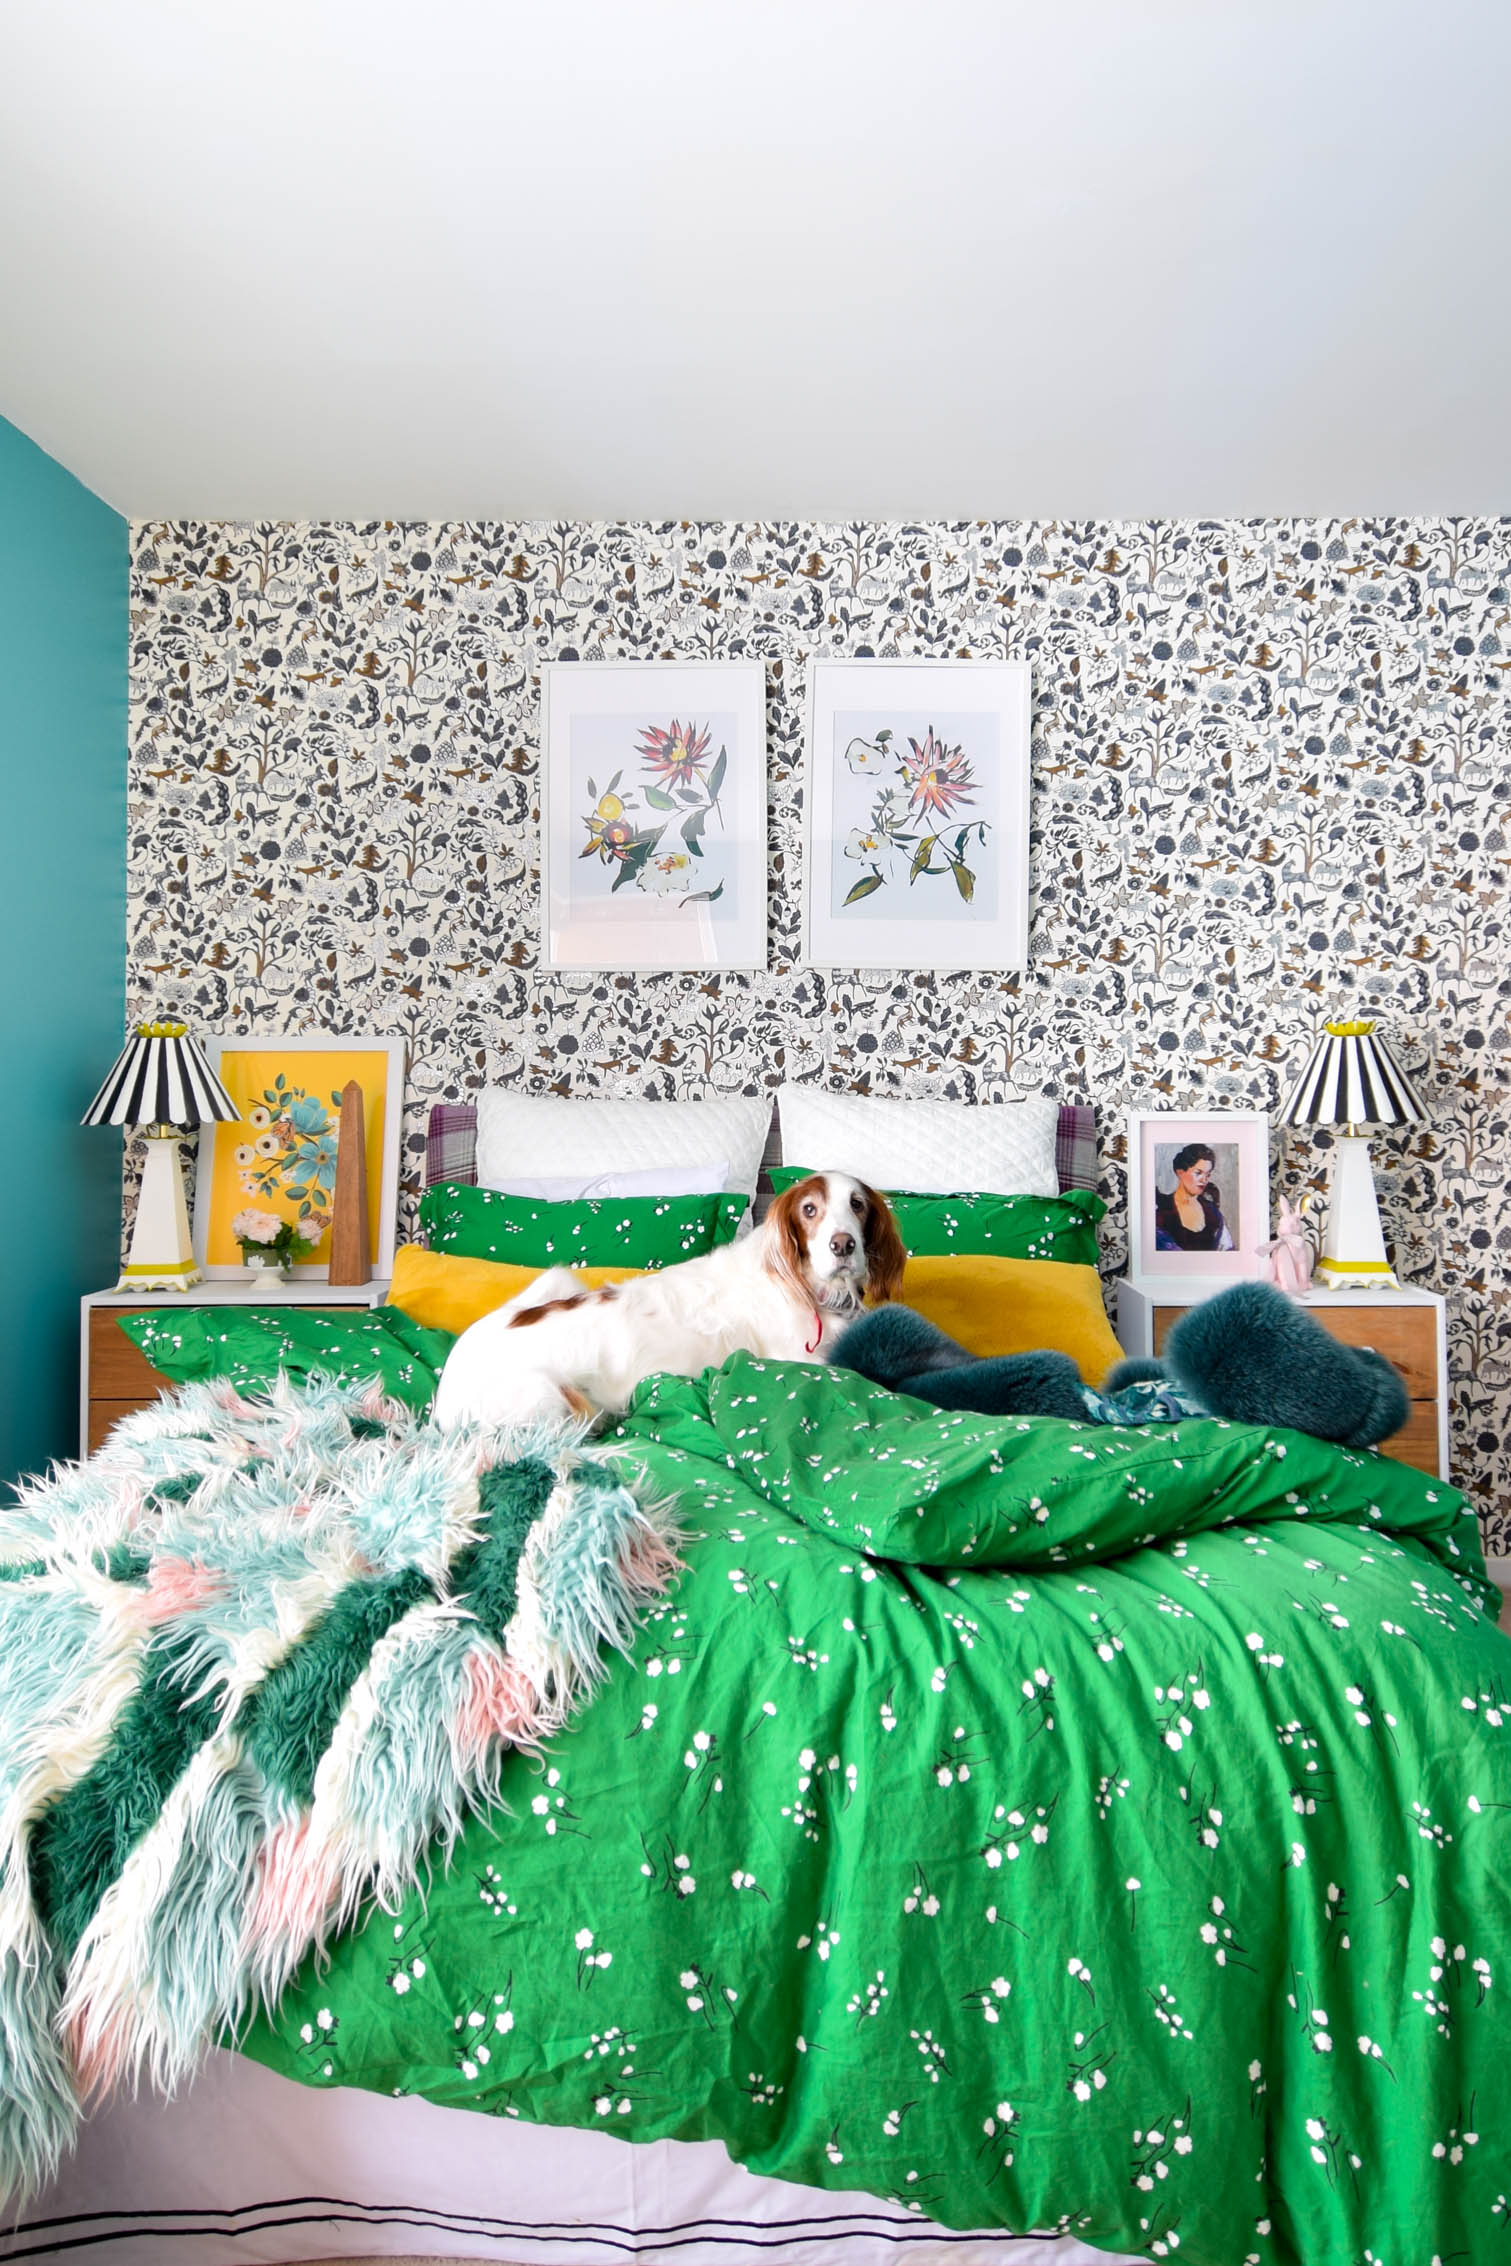 I turned our spare bedroom into a green and blue bedroom worthy of any guests, thanks to wallpaper and paint. Come check it out, be inspired!